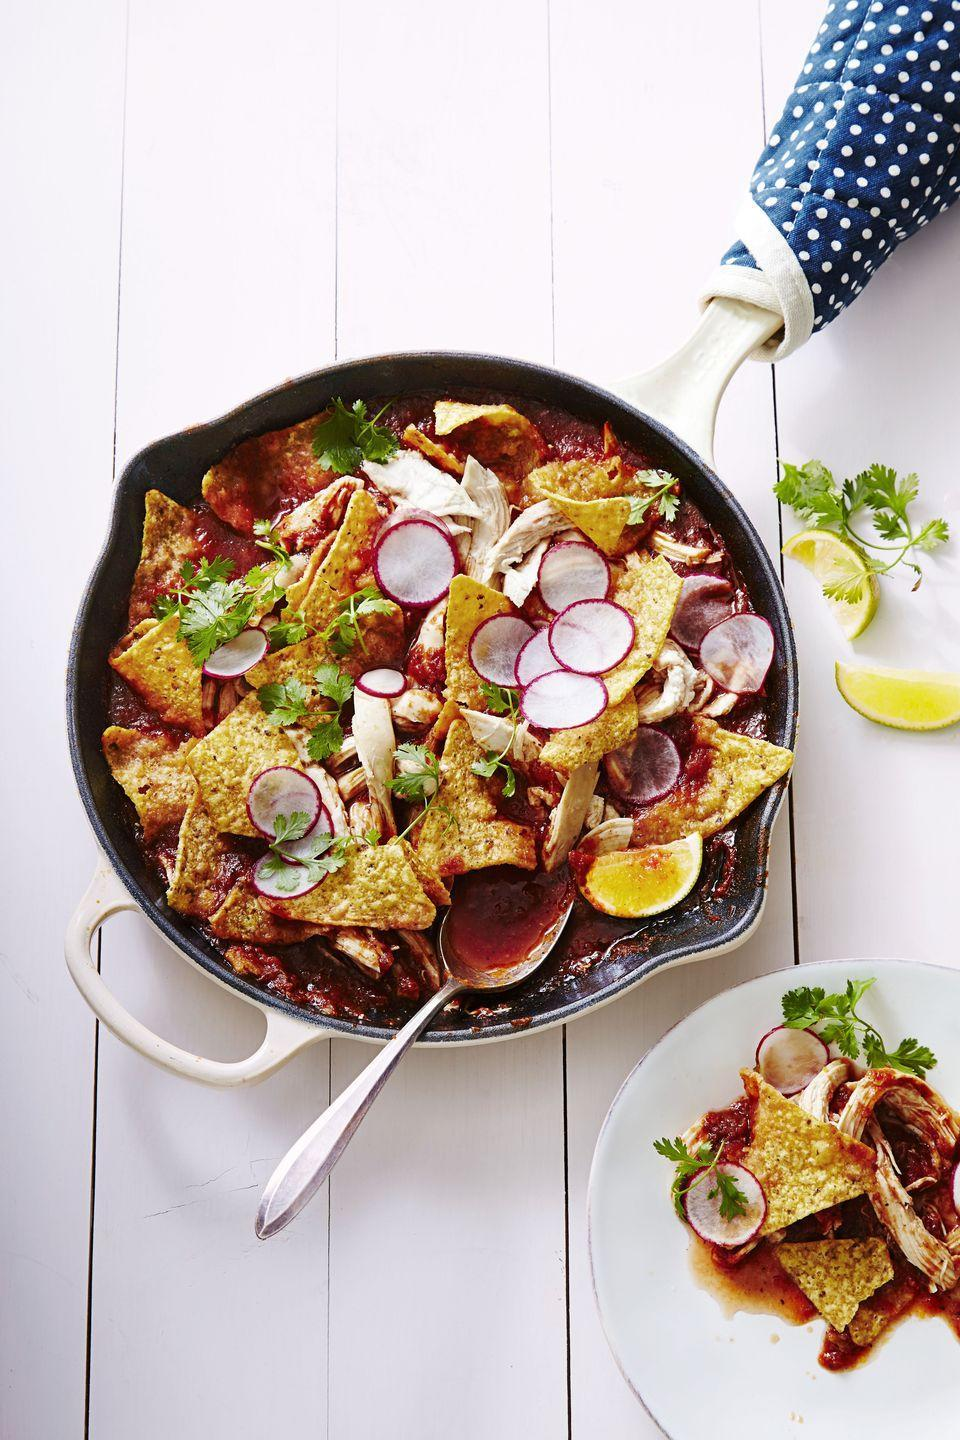 """<p>Crispy tortilla chips covered in tomatoes, green onions, chicken, and radishes ... Is there anything more tempting? </p><p><em><a href=""""https://www.goodhousekeeping.com/food-recipes/easy/a34557/chicken-chilaquiles"""" rel=""""nofollow noopener"""" target=""""_blank"""" data-ylk=""""slk:Get the recipe for Chicken Chilaquiles »"""" class=""""link rapid-noclick-resp"""">Get the recipe for Chicken Chilaquiles »</a></em></p>"""